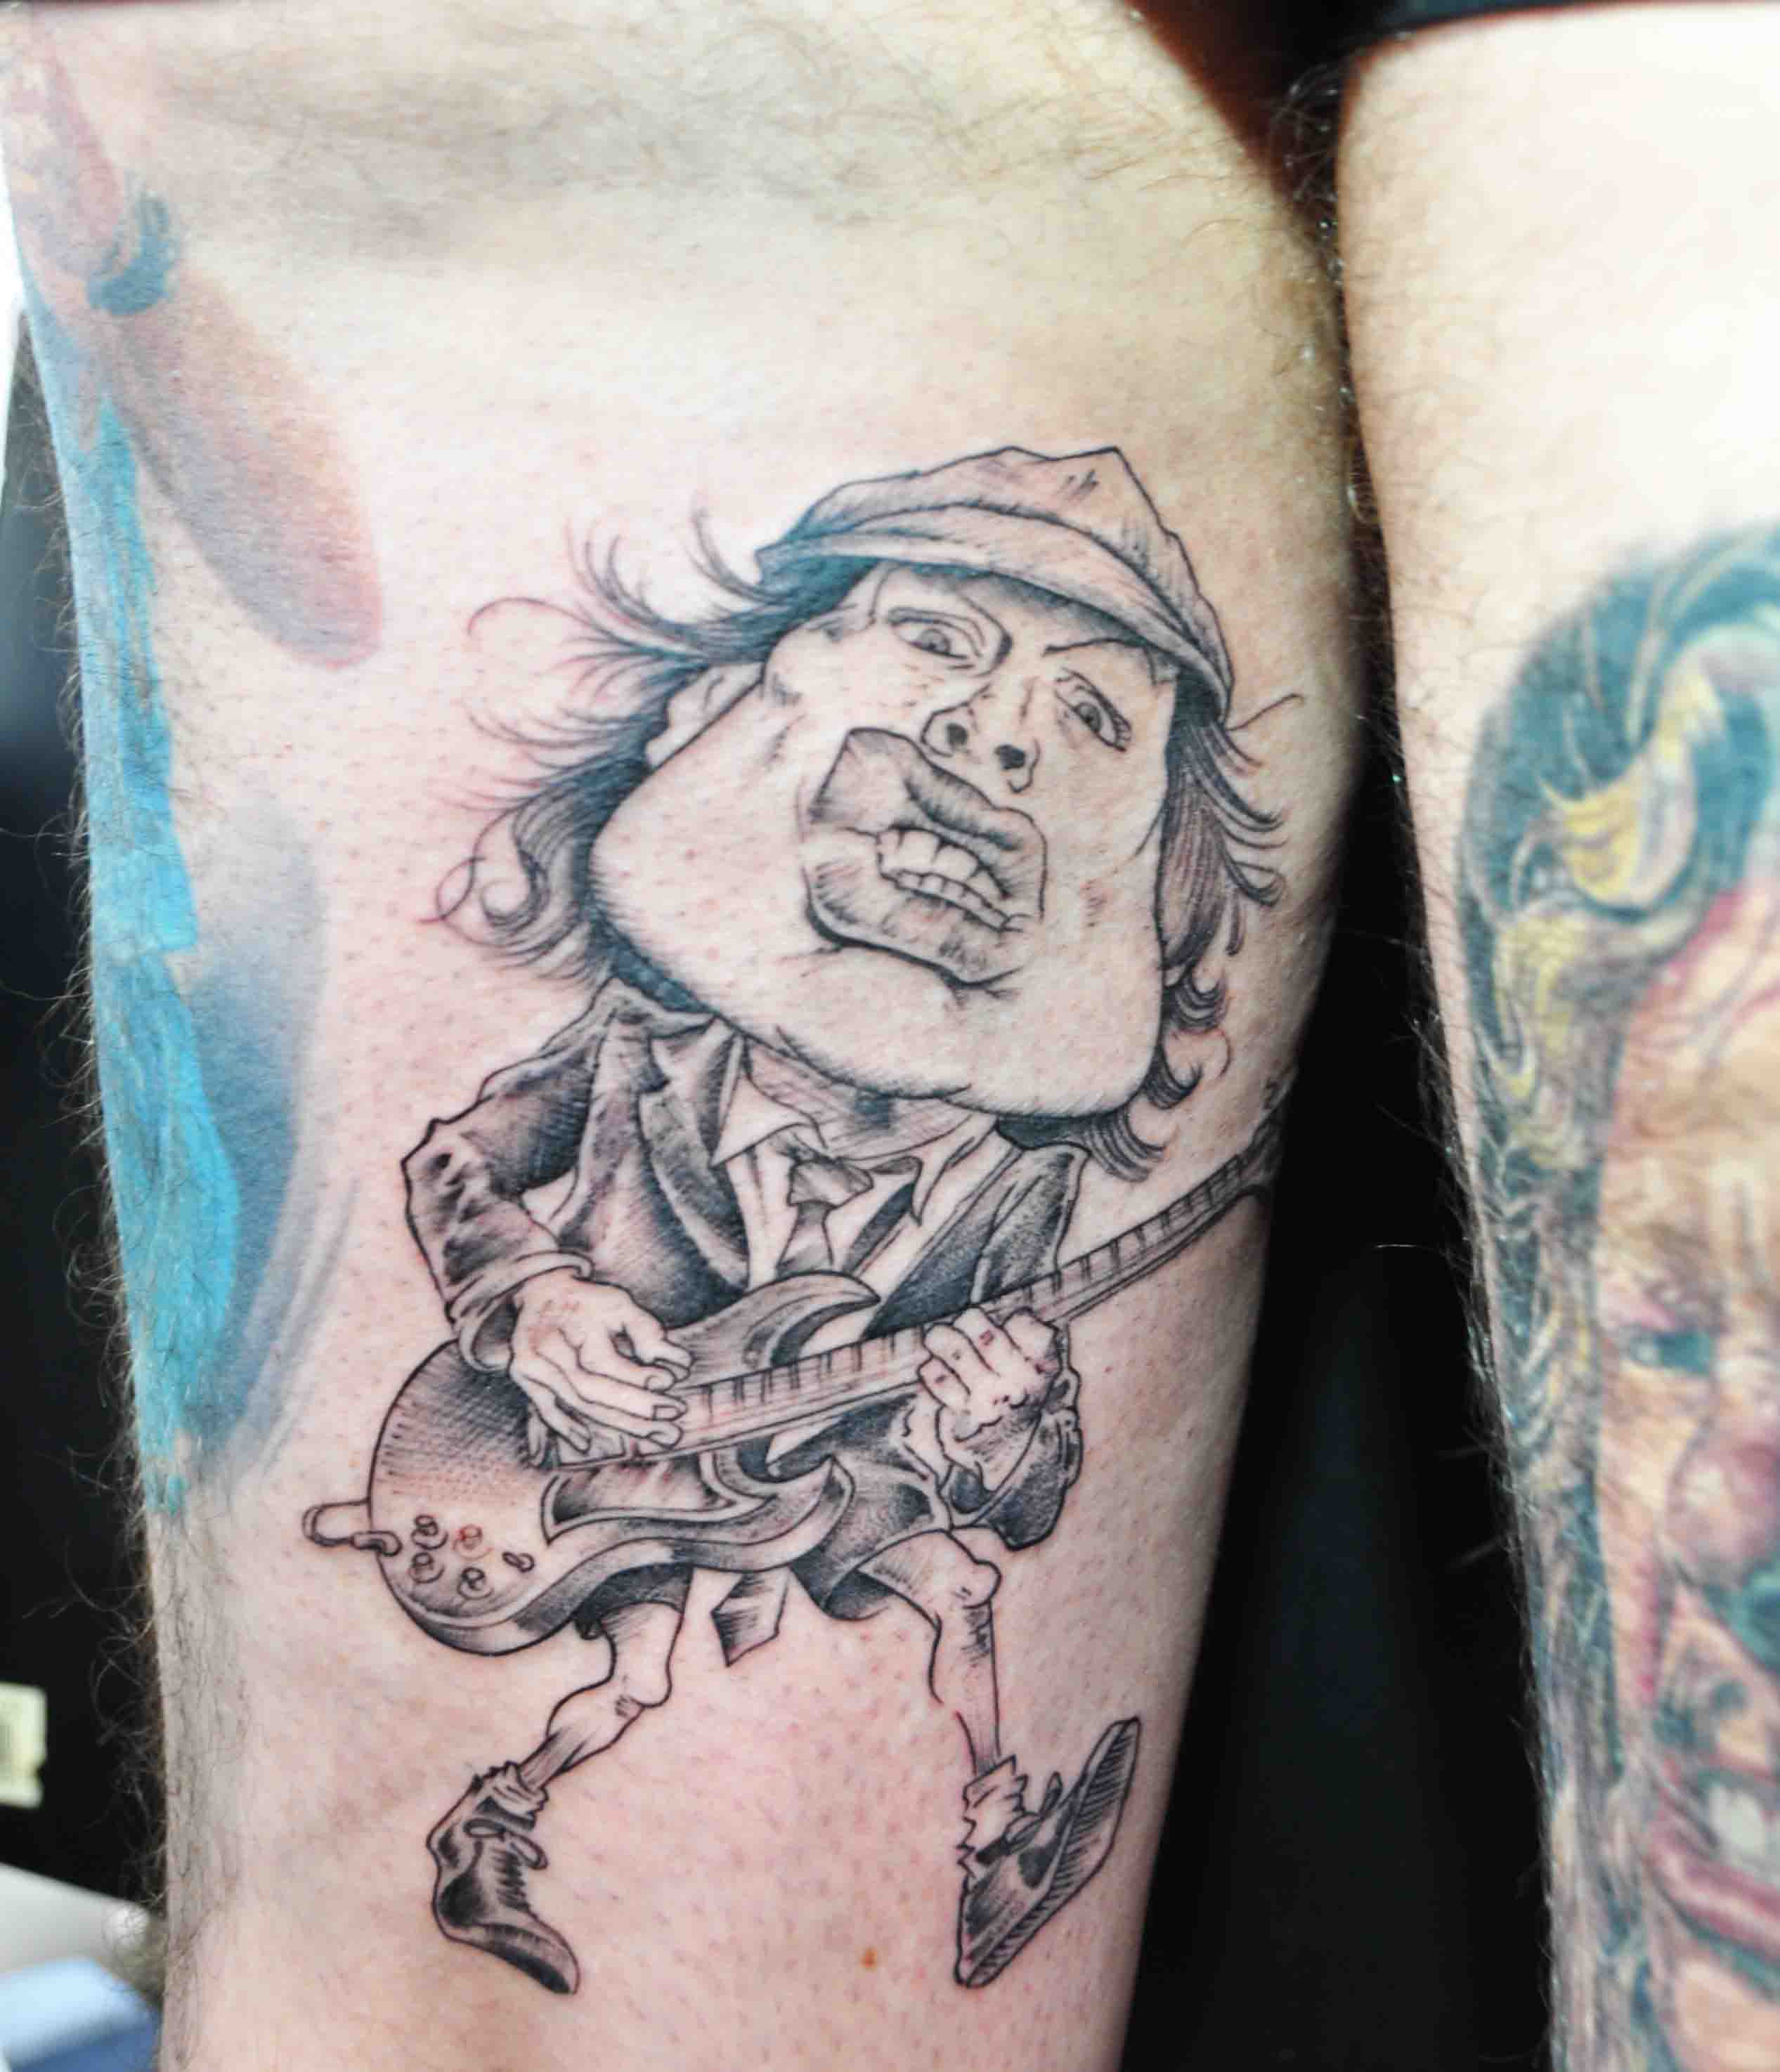 angus_tattoo copie.jpg